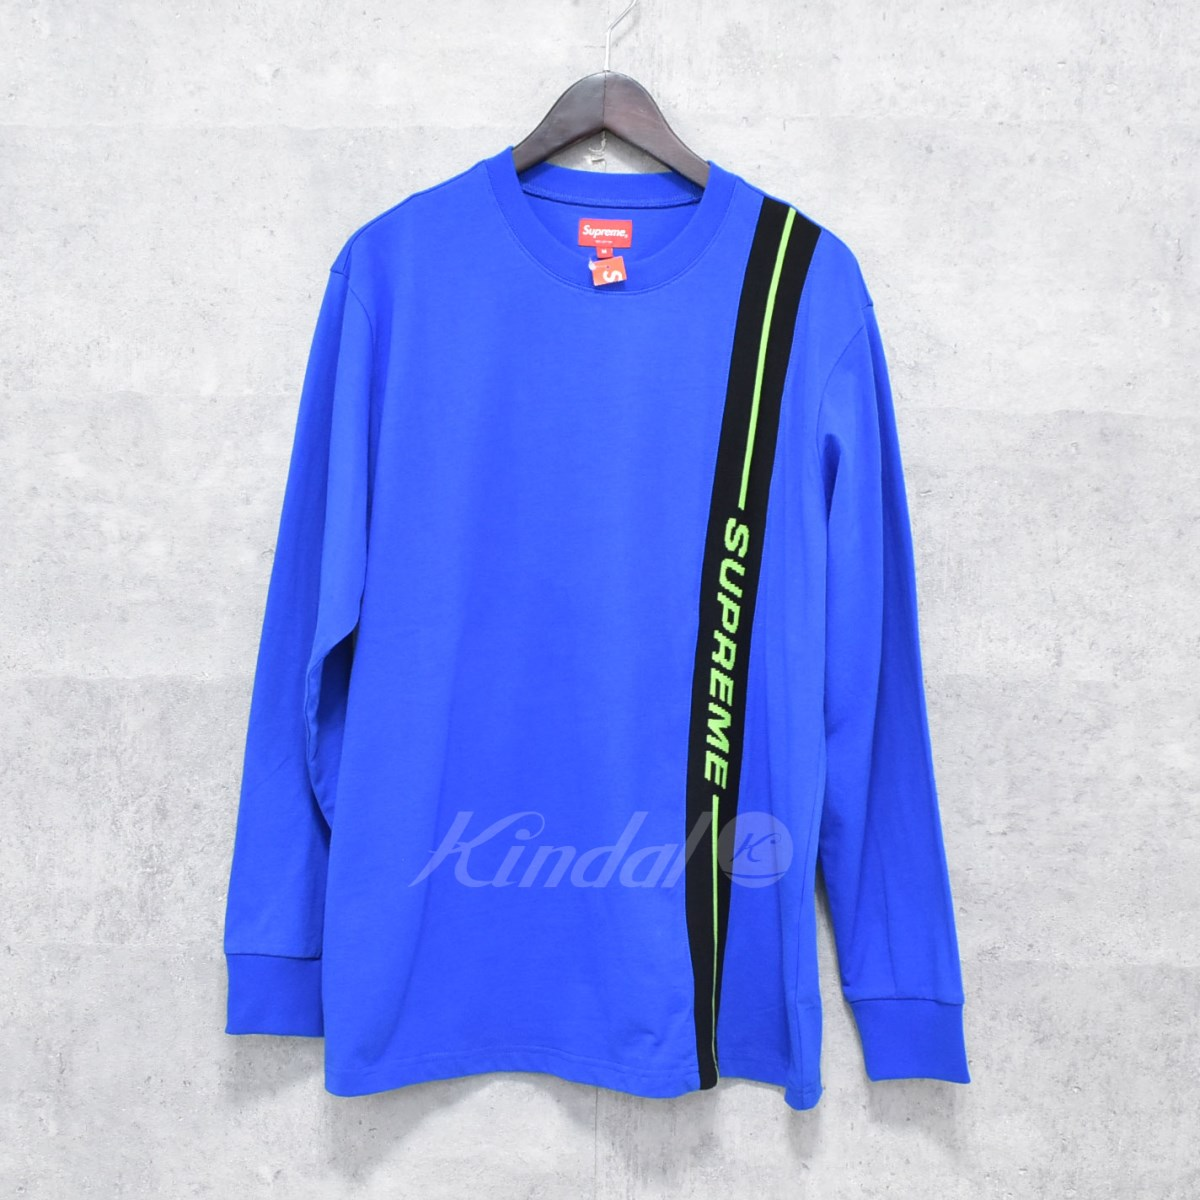 【中古】SUPREME 2018A/W Vertical Logo Stripeカットソー 【送料無料】 【245435】 【KIND1550】